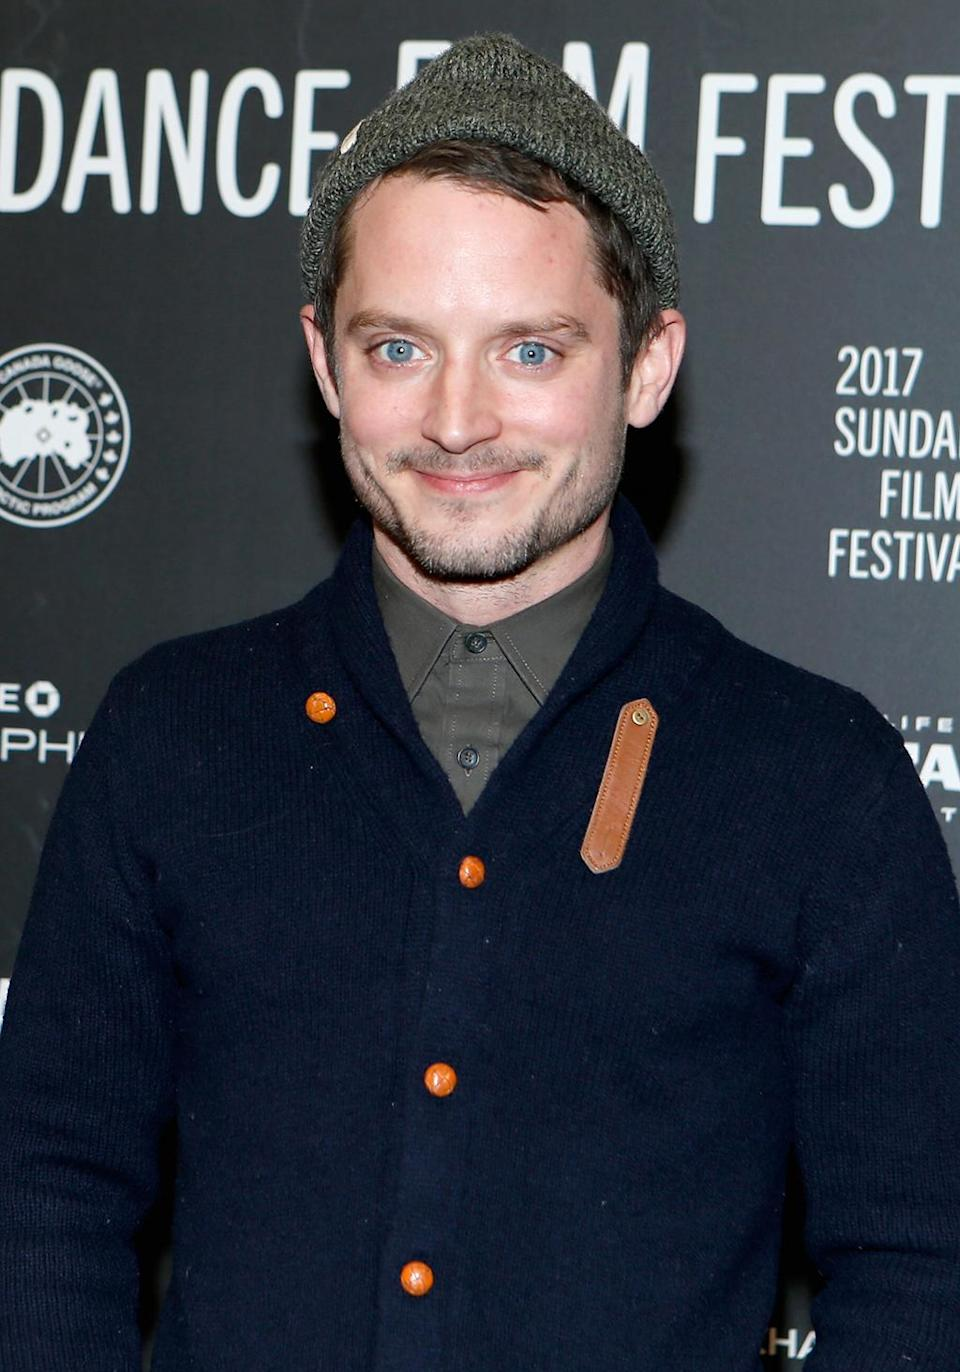 <p>The erstwhile Hobbit attends the premiere of 'I Don't Feel at Home in This World Anymore' on Jan 19. (Photo: Chad Hurst/Getty Images) </p>